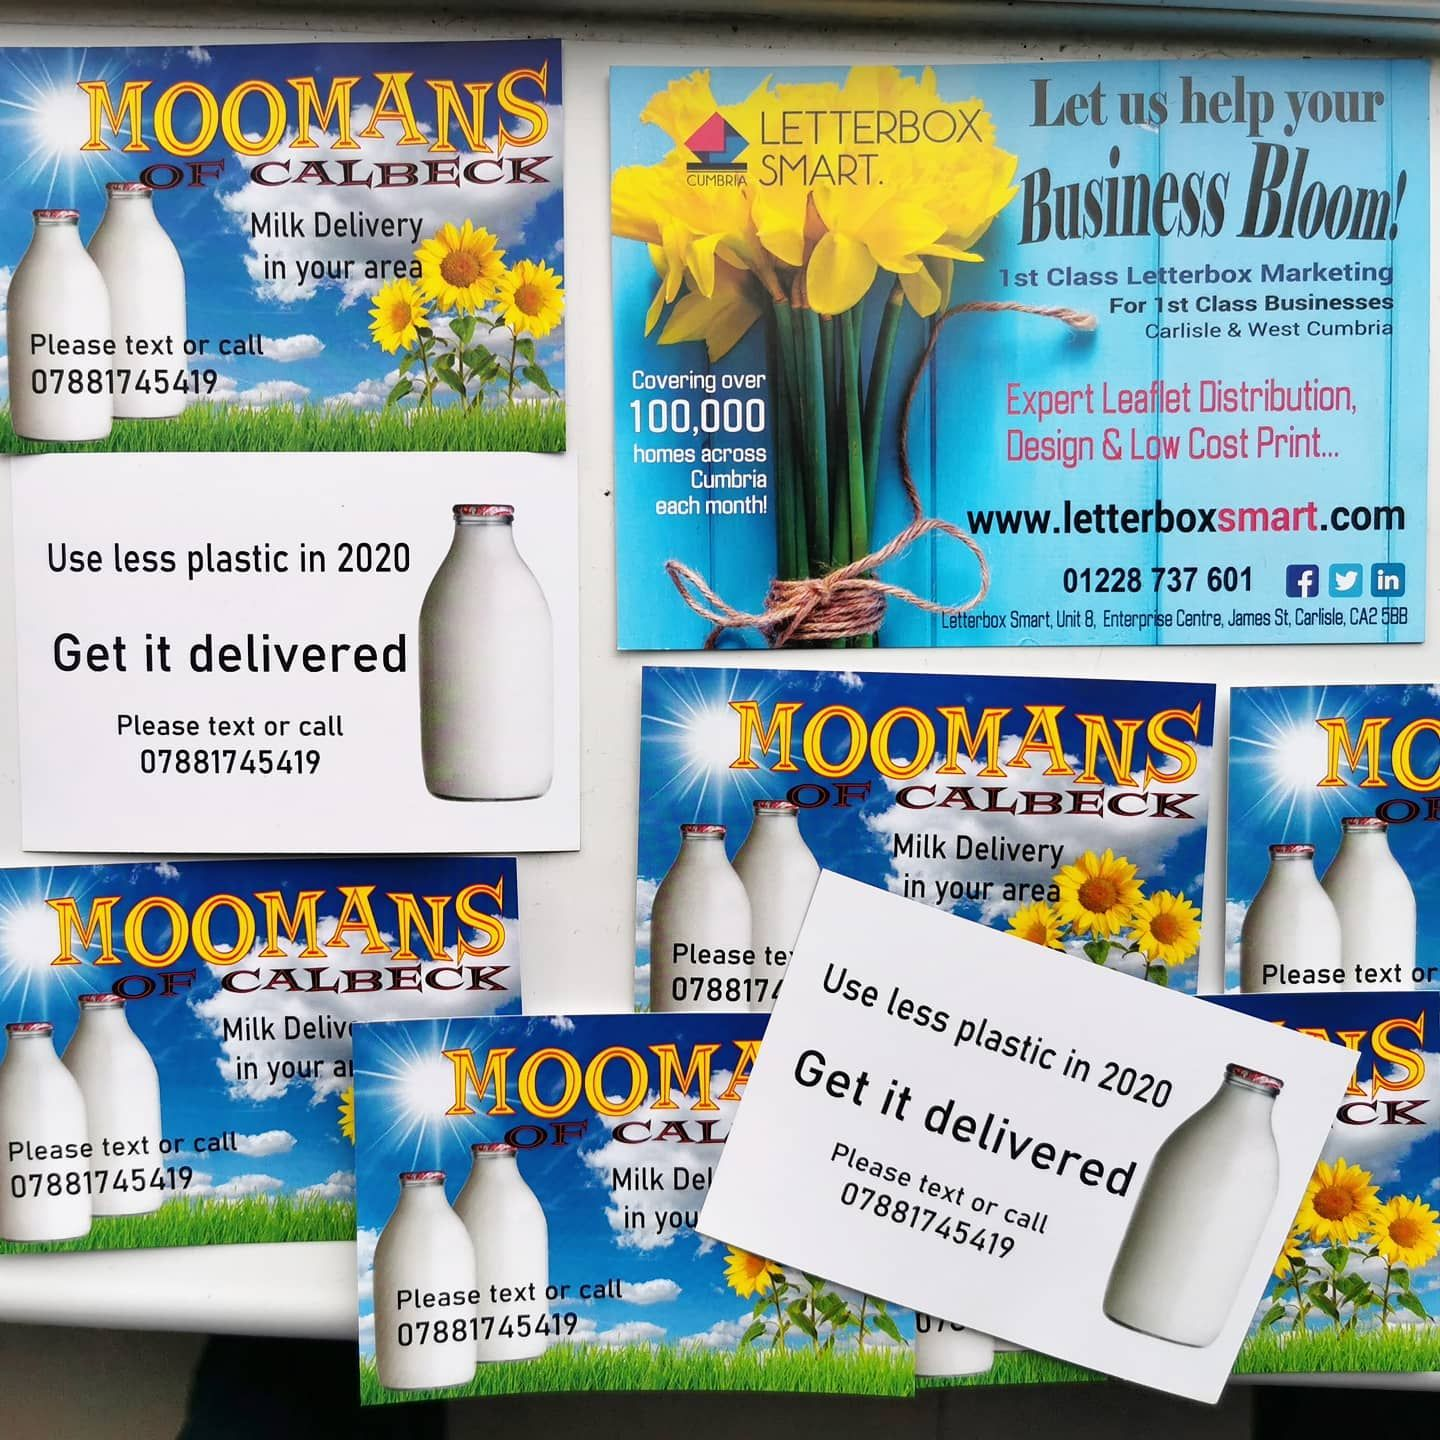 Get It Delivered Fresh Milk From Local Milkman Mooman Of Caldbeck Milk Rounds Available In Wigton Aspatria In 2020 Leaflet Distribution Leaflet Milk Delivery